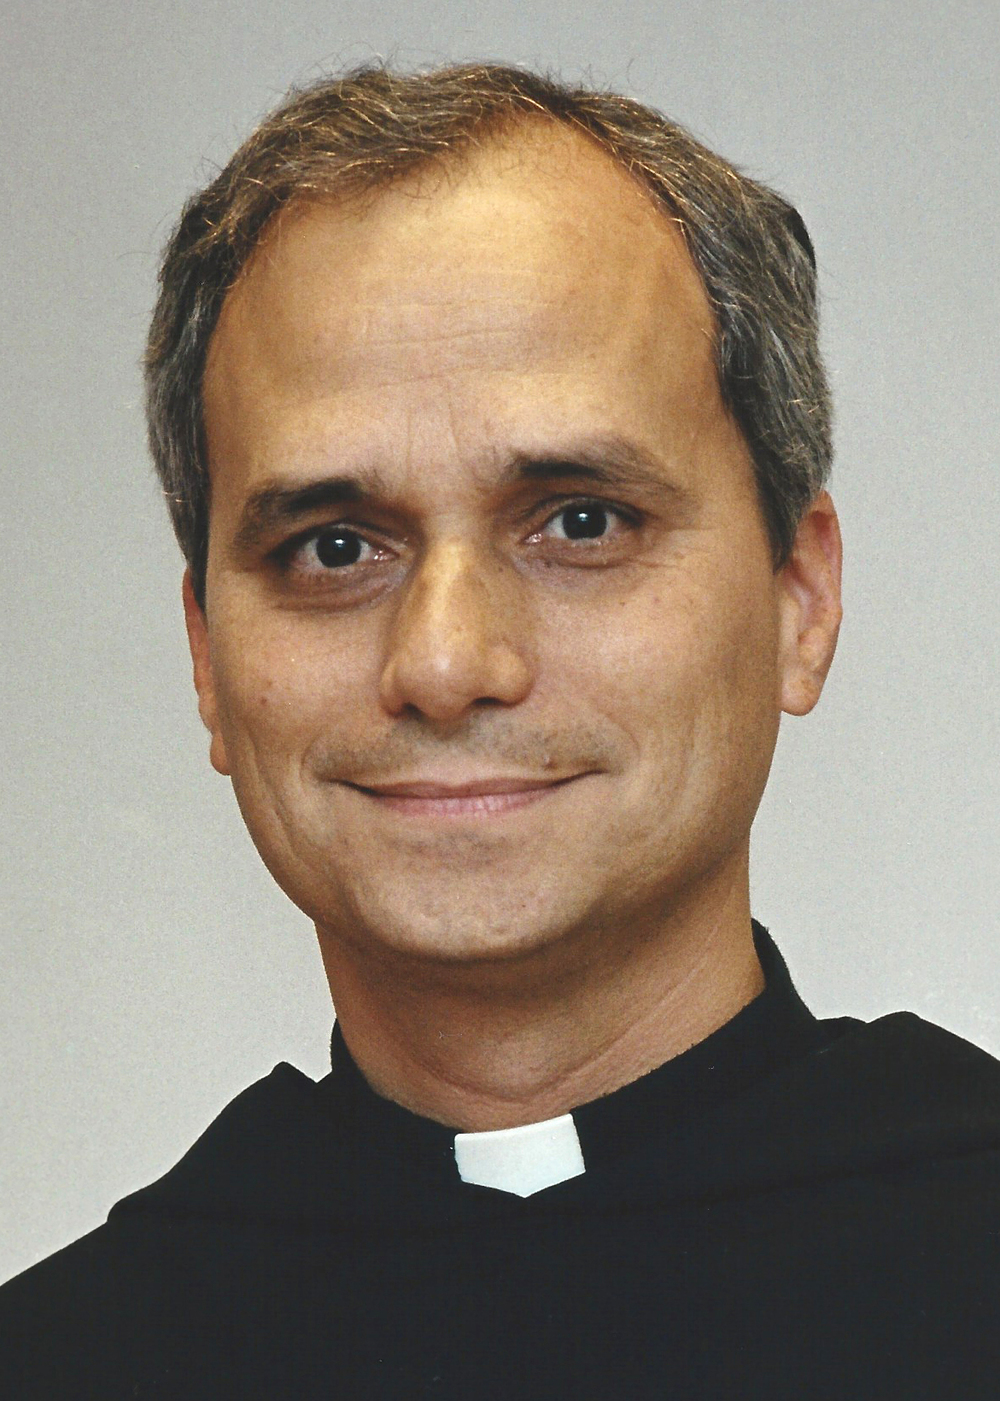 Bishop-elect Robert F. Prevost, O.S.A., of Chiclayo, Peru